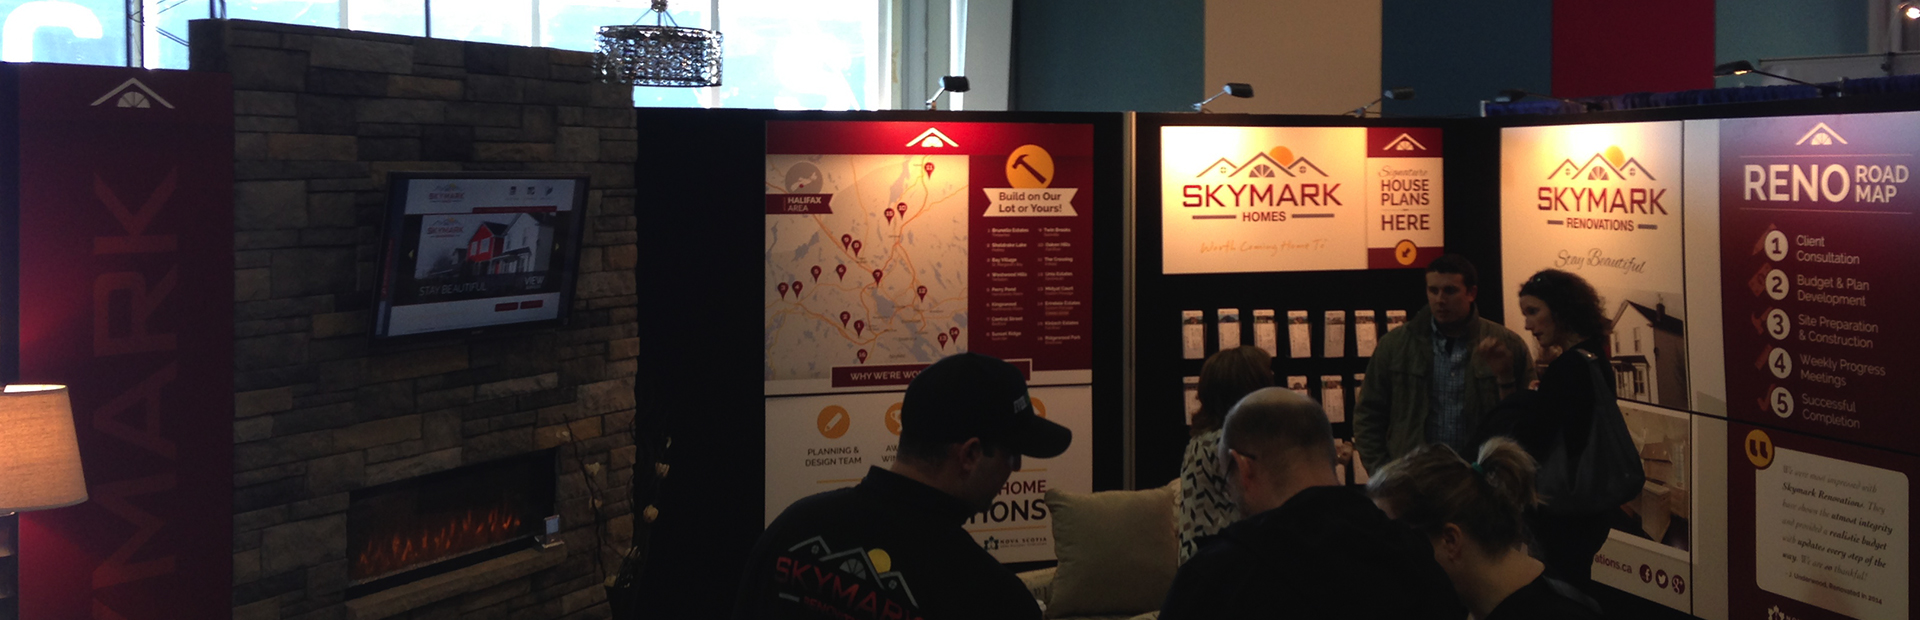 Make Your Skymark Home Show